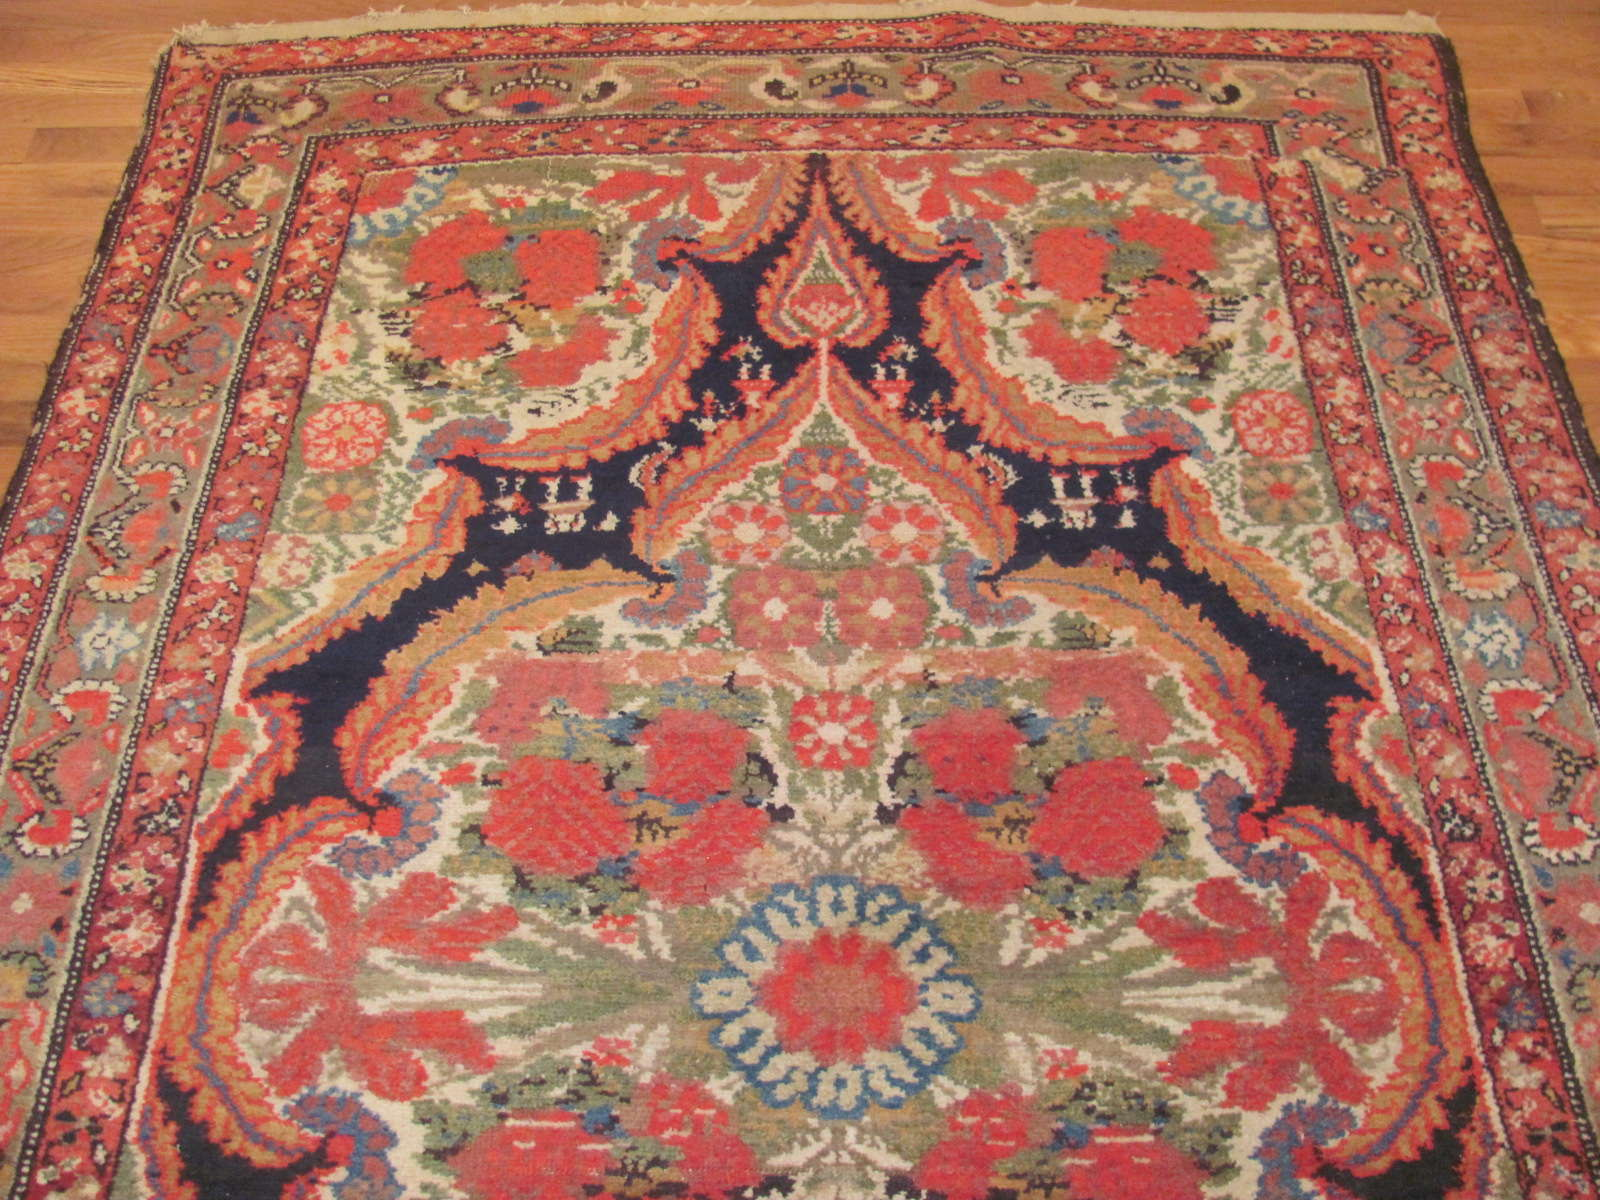 24430 antique persian malayer gallery runner 4,9x11,9 -1